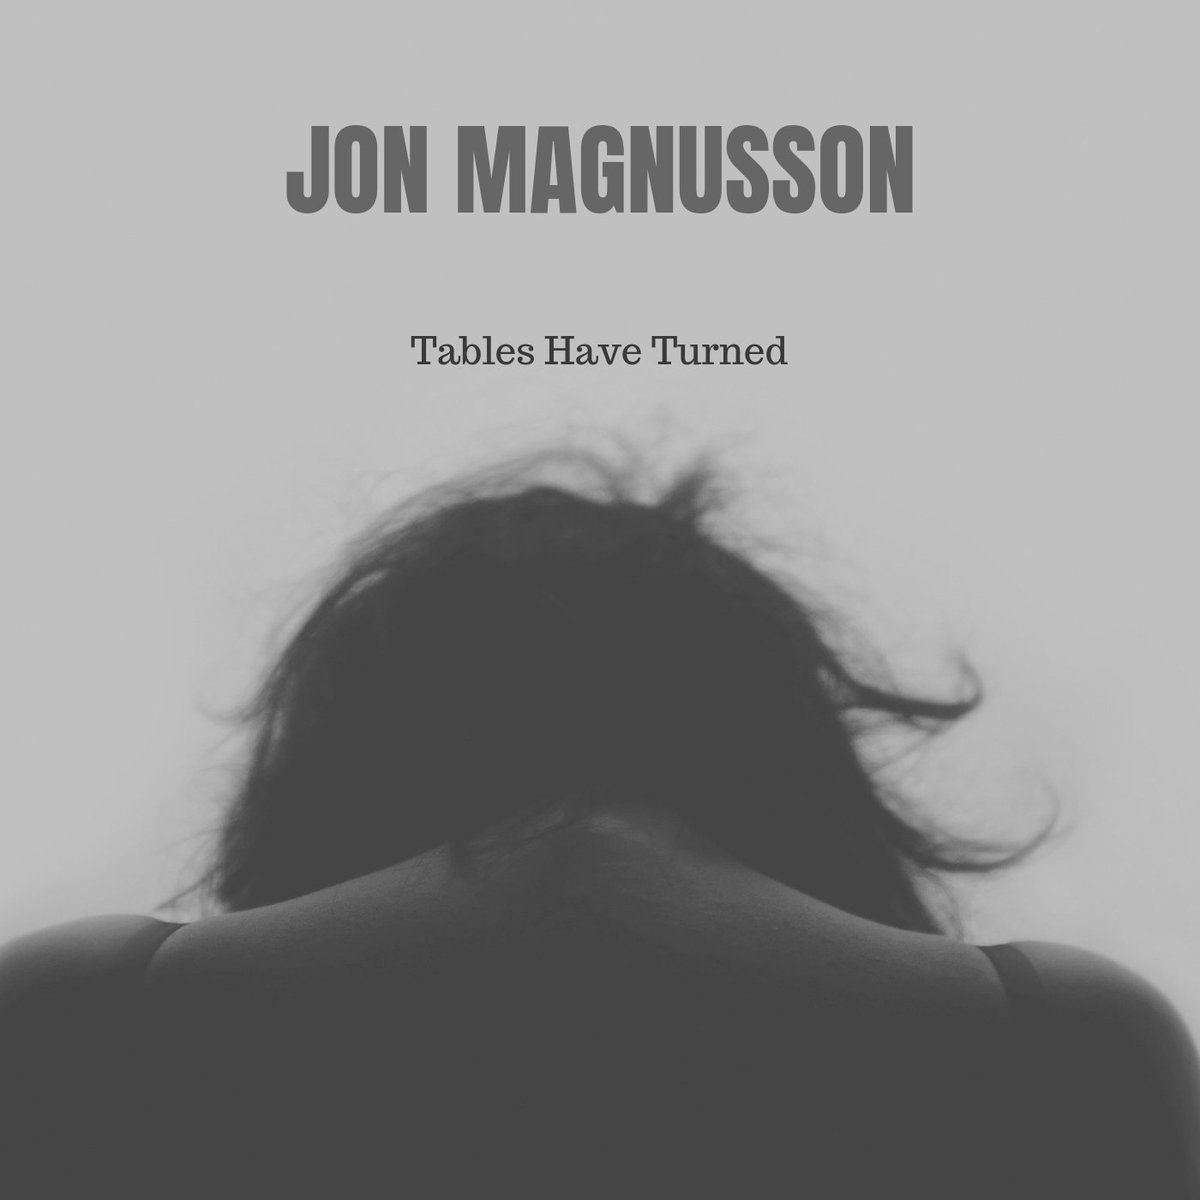 🎧 Throwing vibes out to our top ten entries! 🗣 Shout out to Stockholm based @jonmagnussonof for his cover of Tables have Turned by @songsbyralph 👉 soundcloud.com/beljon86/table…